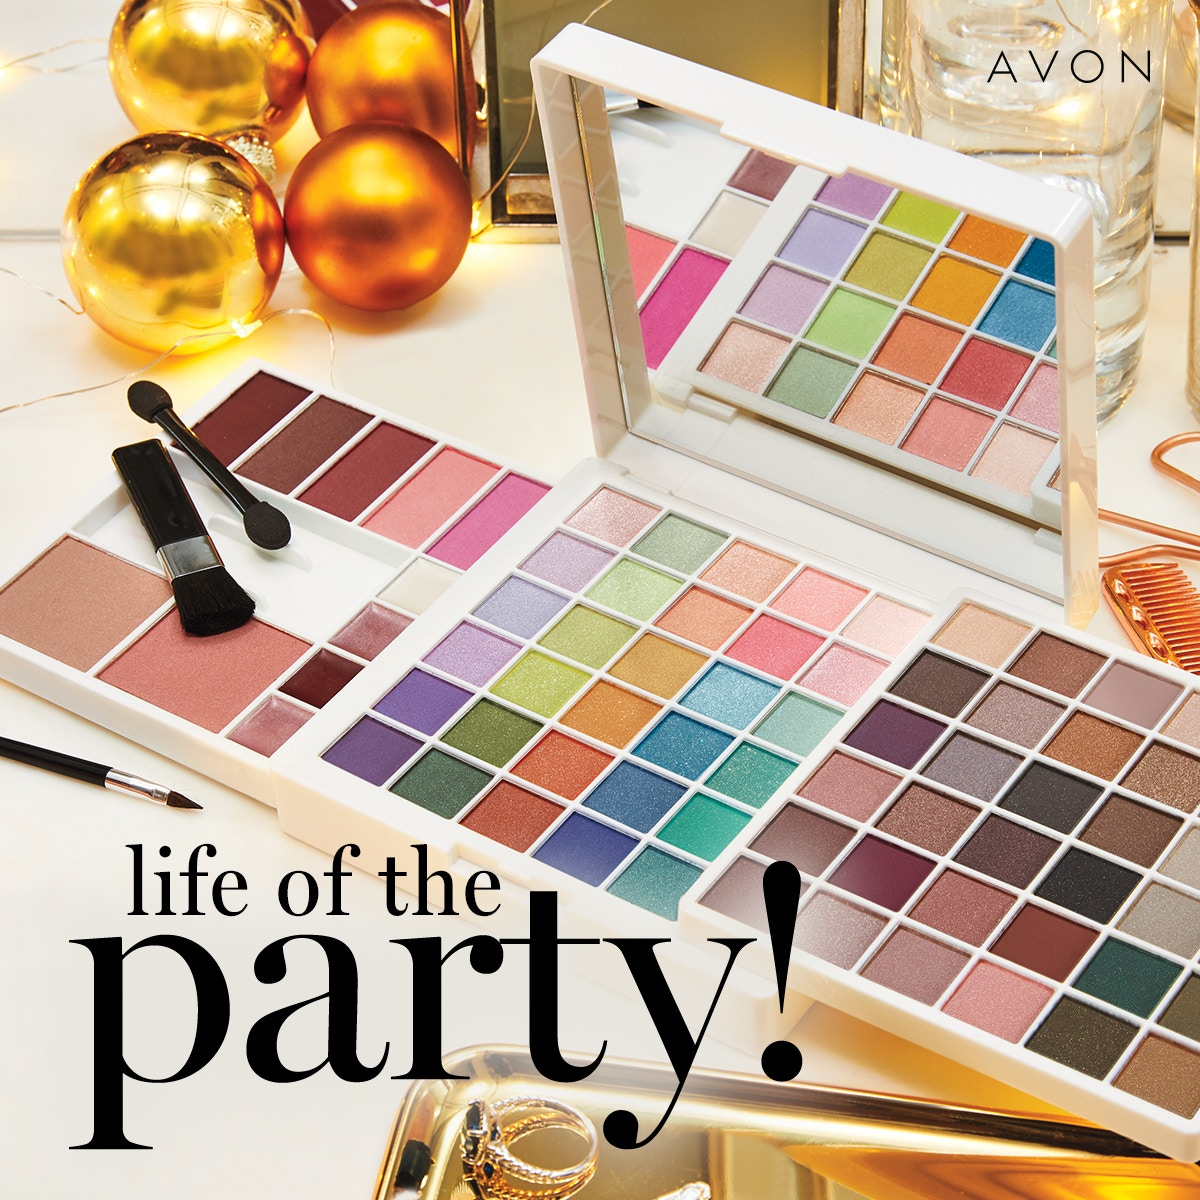 Create endless looks this holiday season and beyond! Over 75 universal shades to create all your holiday looks, from office parties to New Year's Eve!    #beautyboss #avon #avonrepresentative #avonusarep #avonproducts #makeup #eyes #eyeshadow #giftset